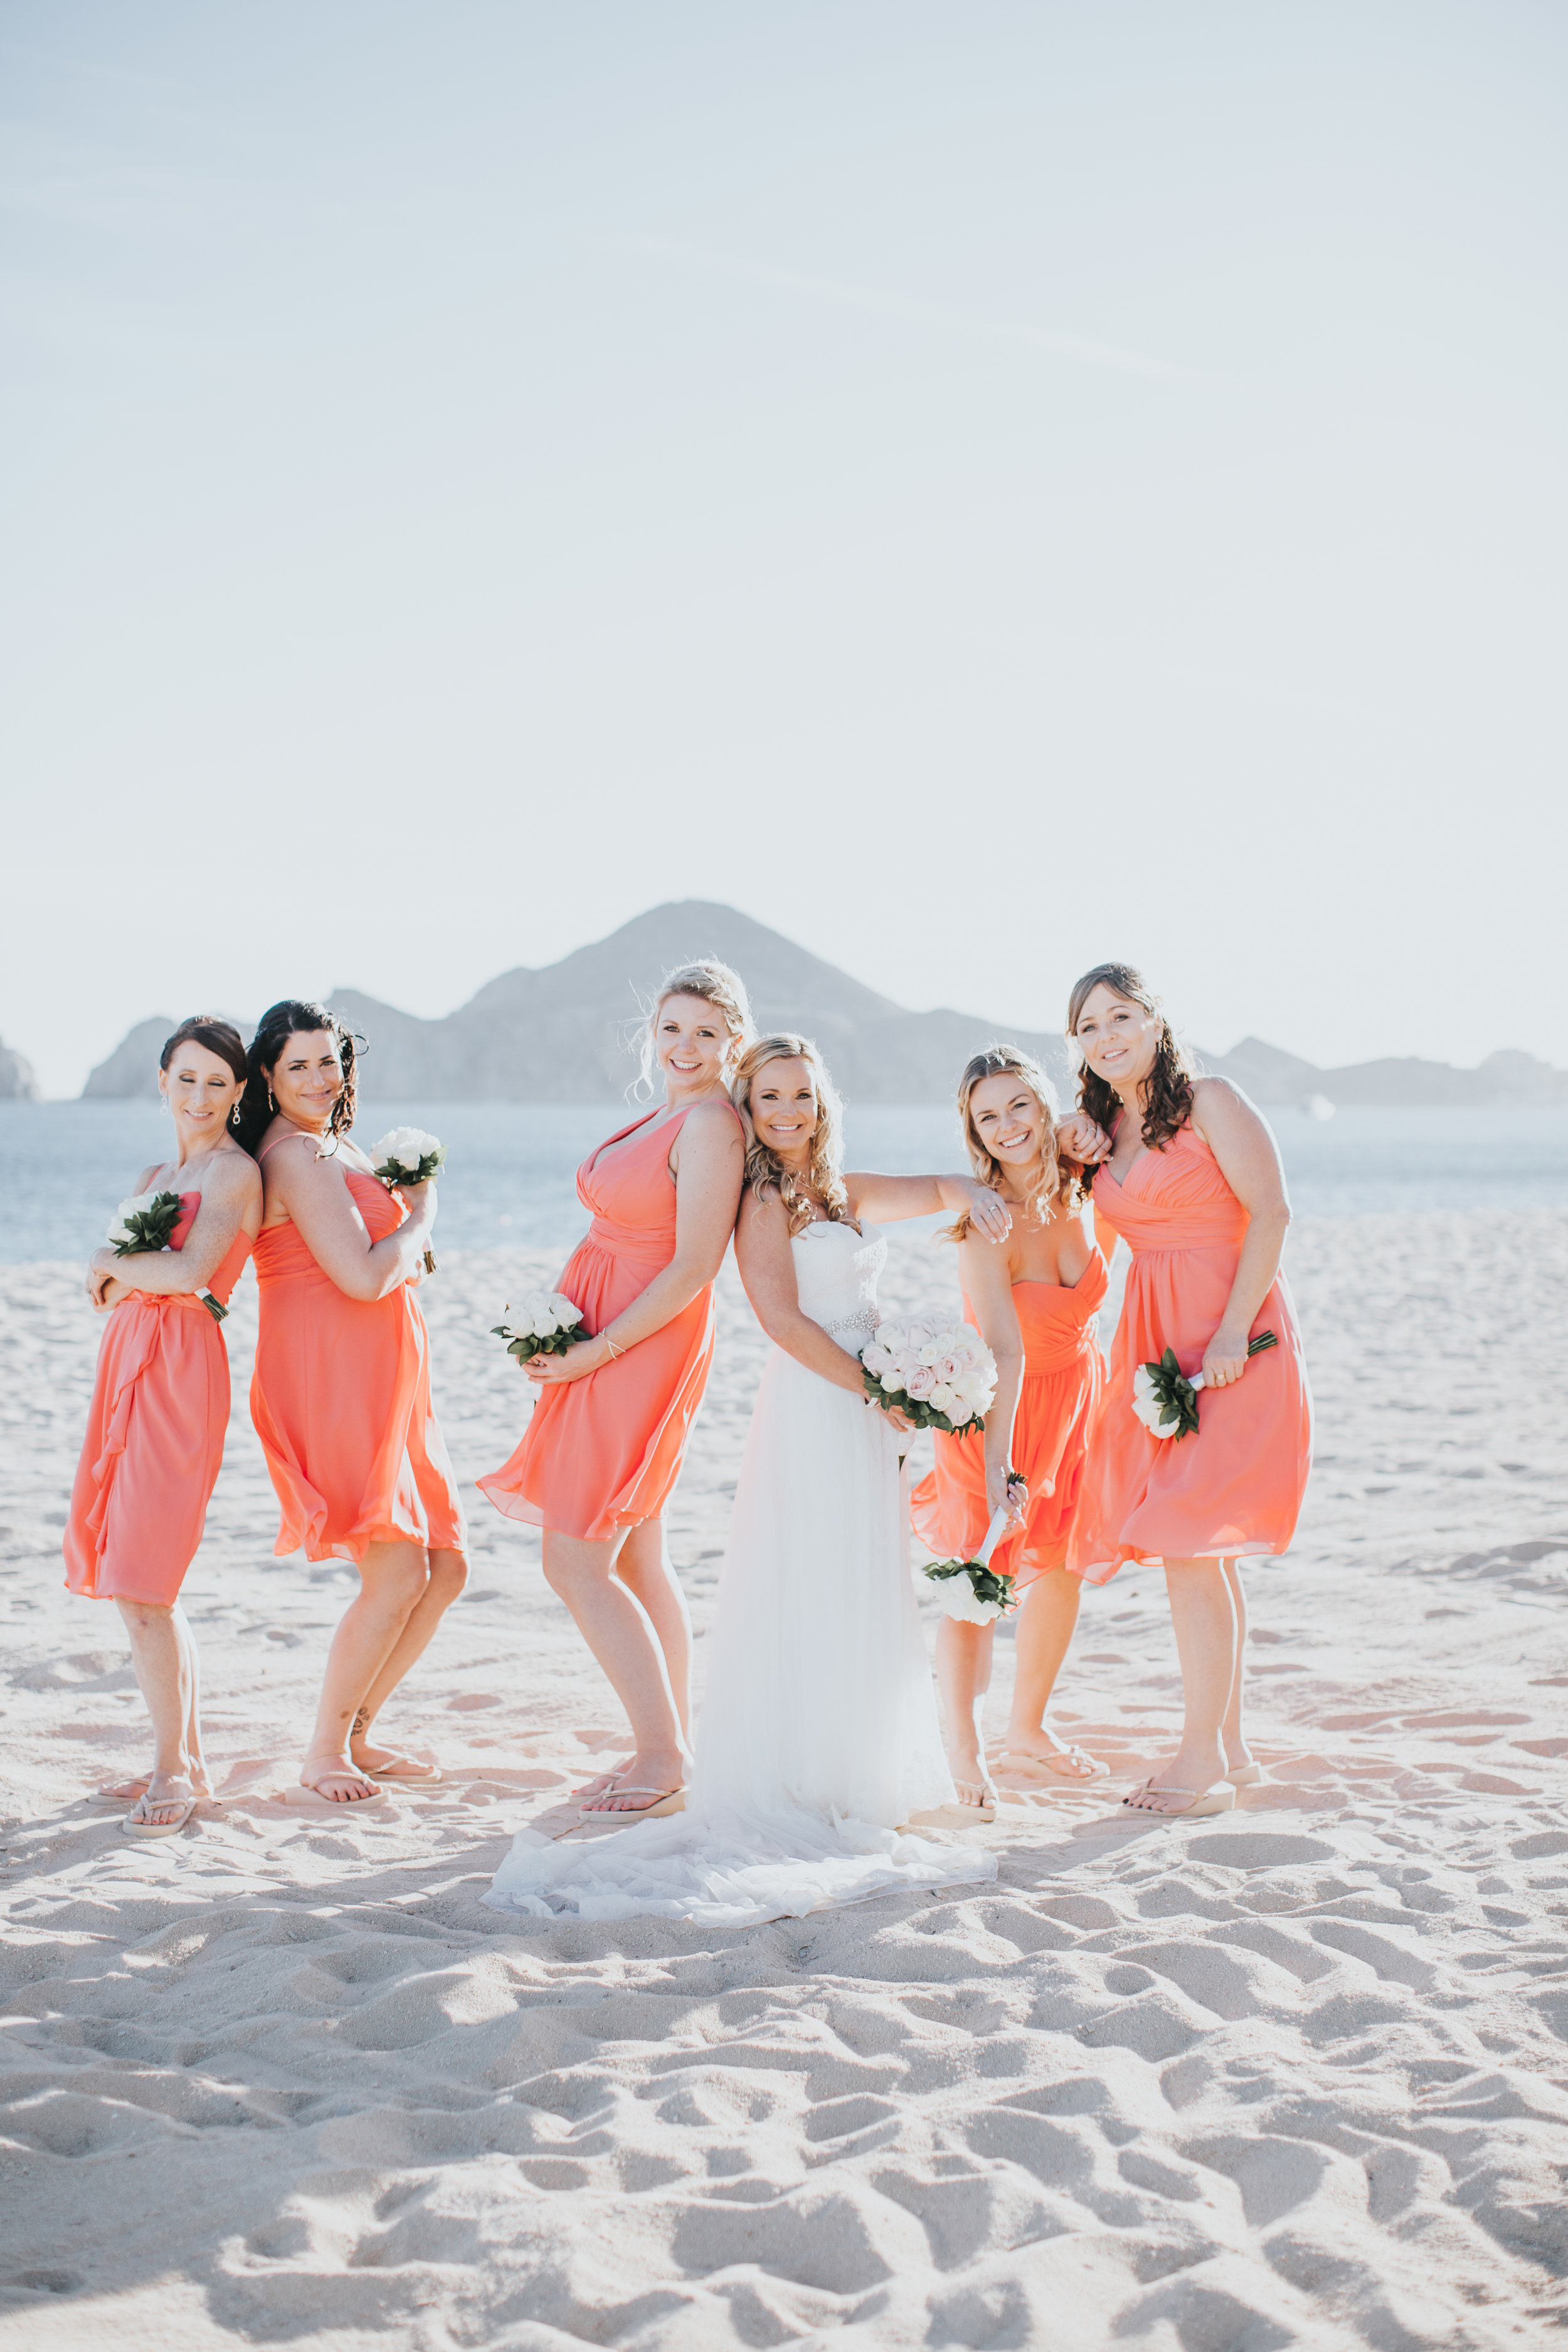 Ashleynickdestinationweddingmexicorivkahphotography-11.jpg